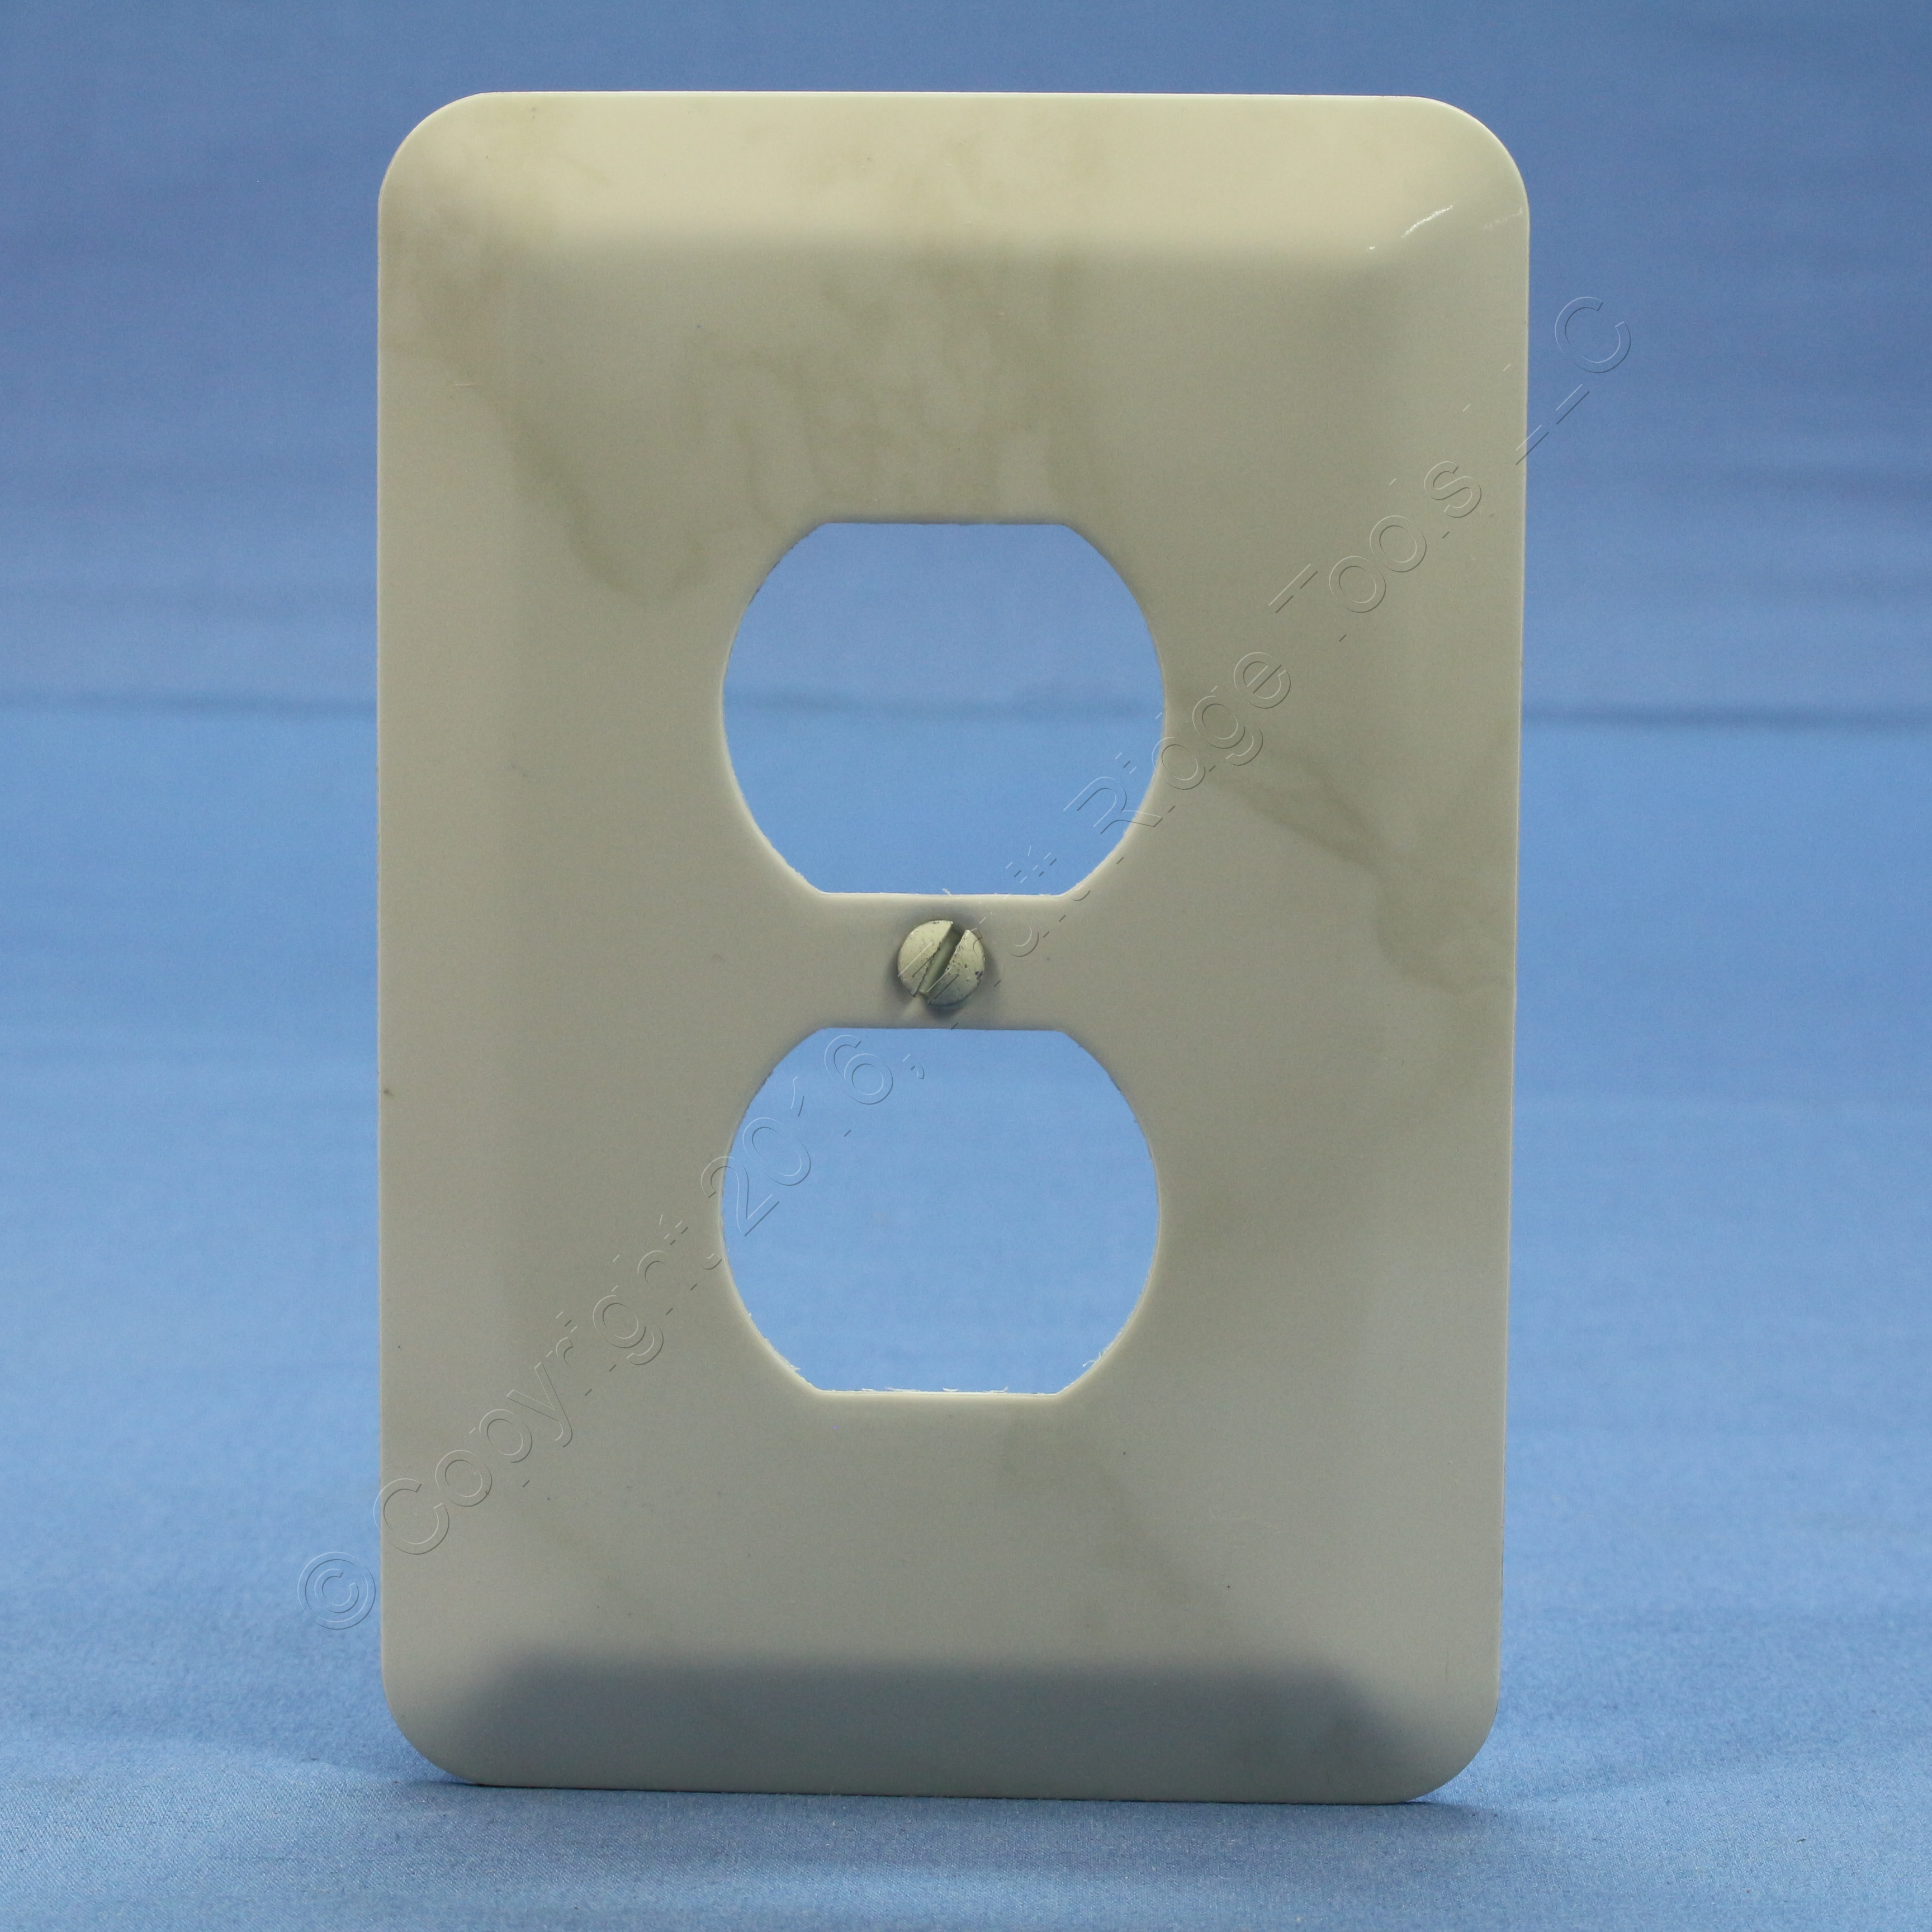 Metal Electrical Outlet Covers Oversized Outlet Covers: Leviton JUMBO Ivory Marble Steel Outlet Cover Oversize